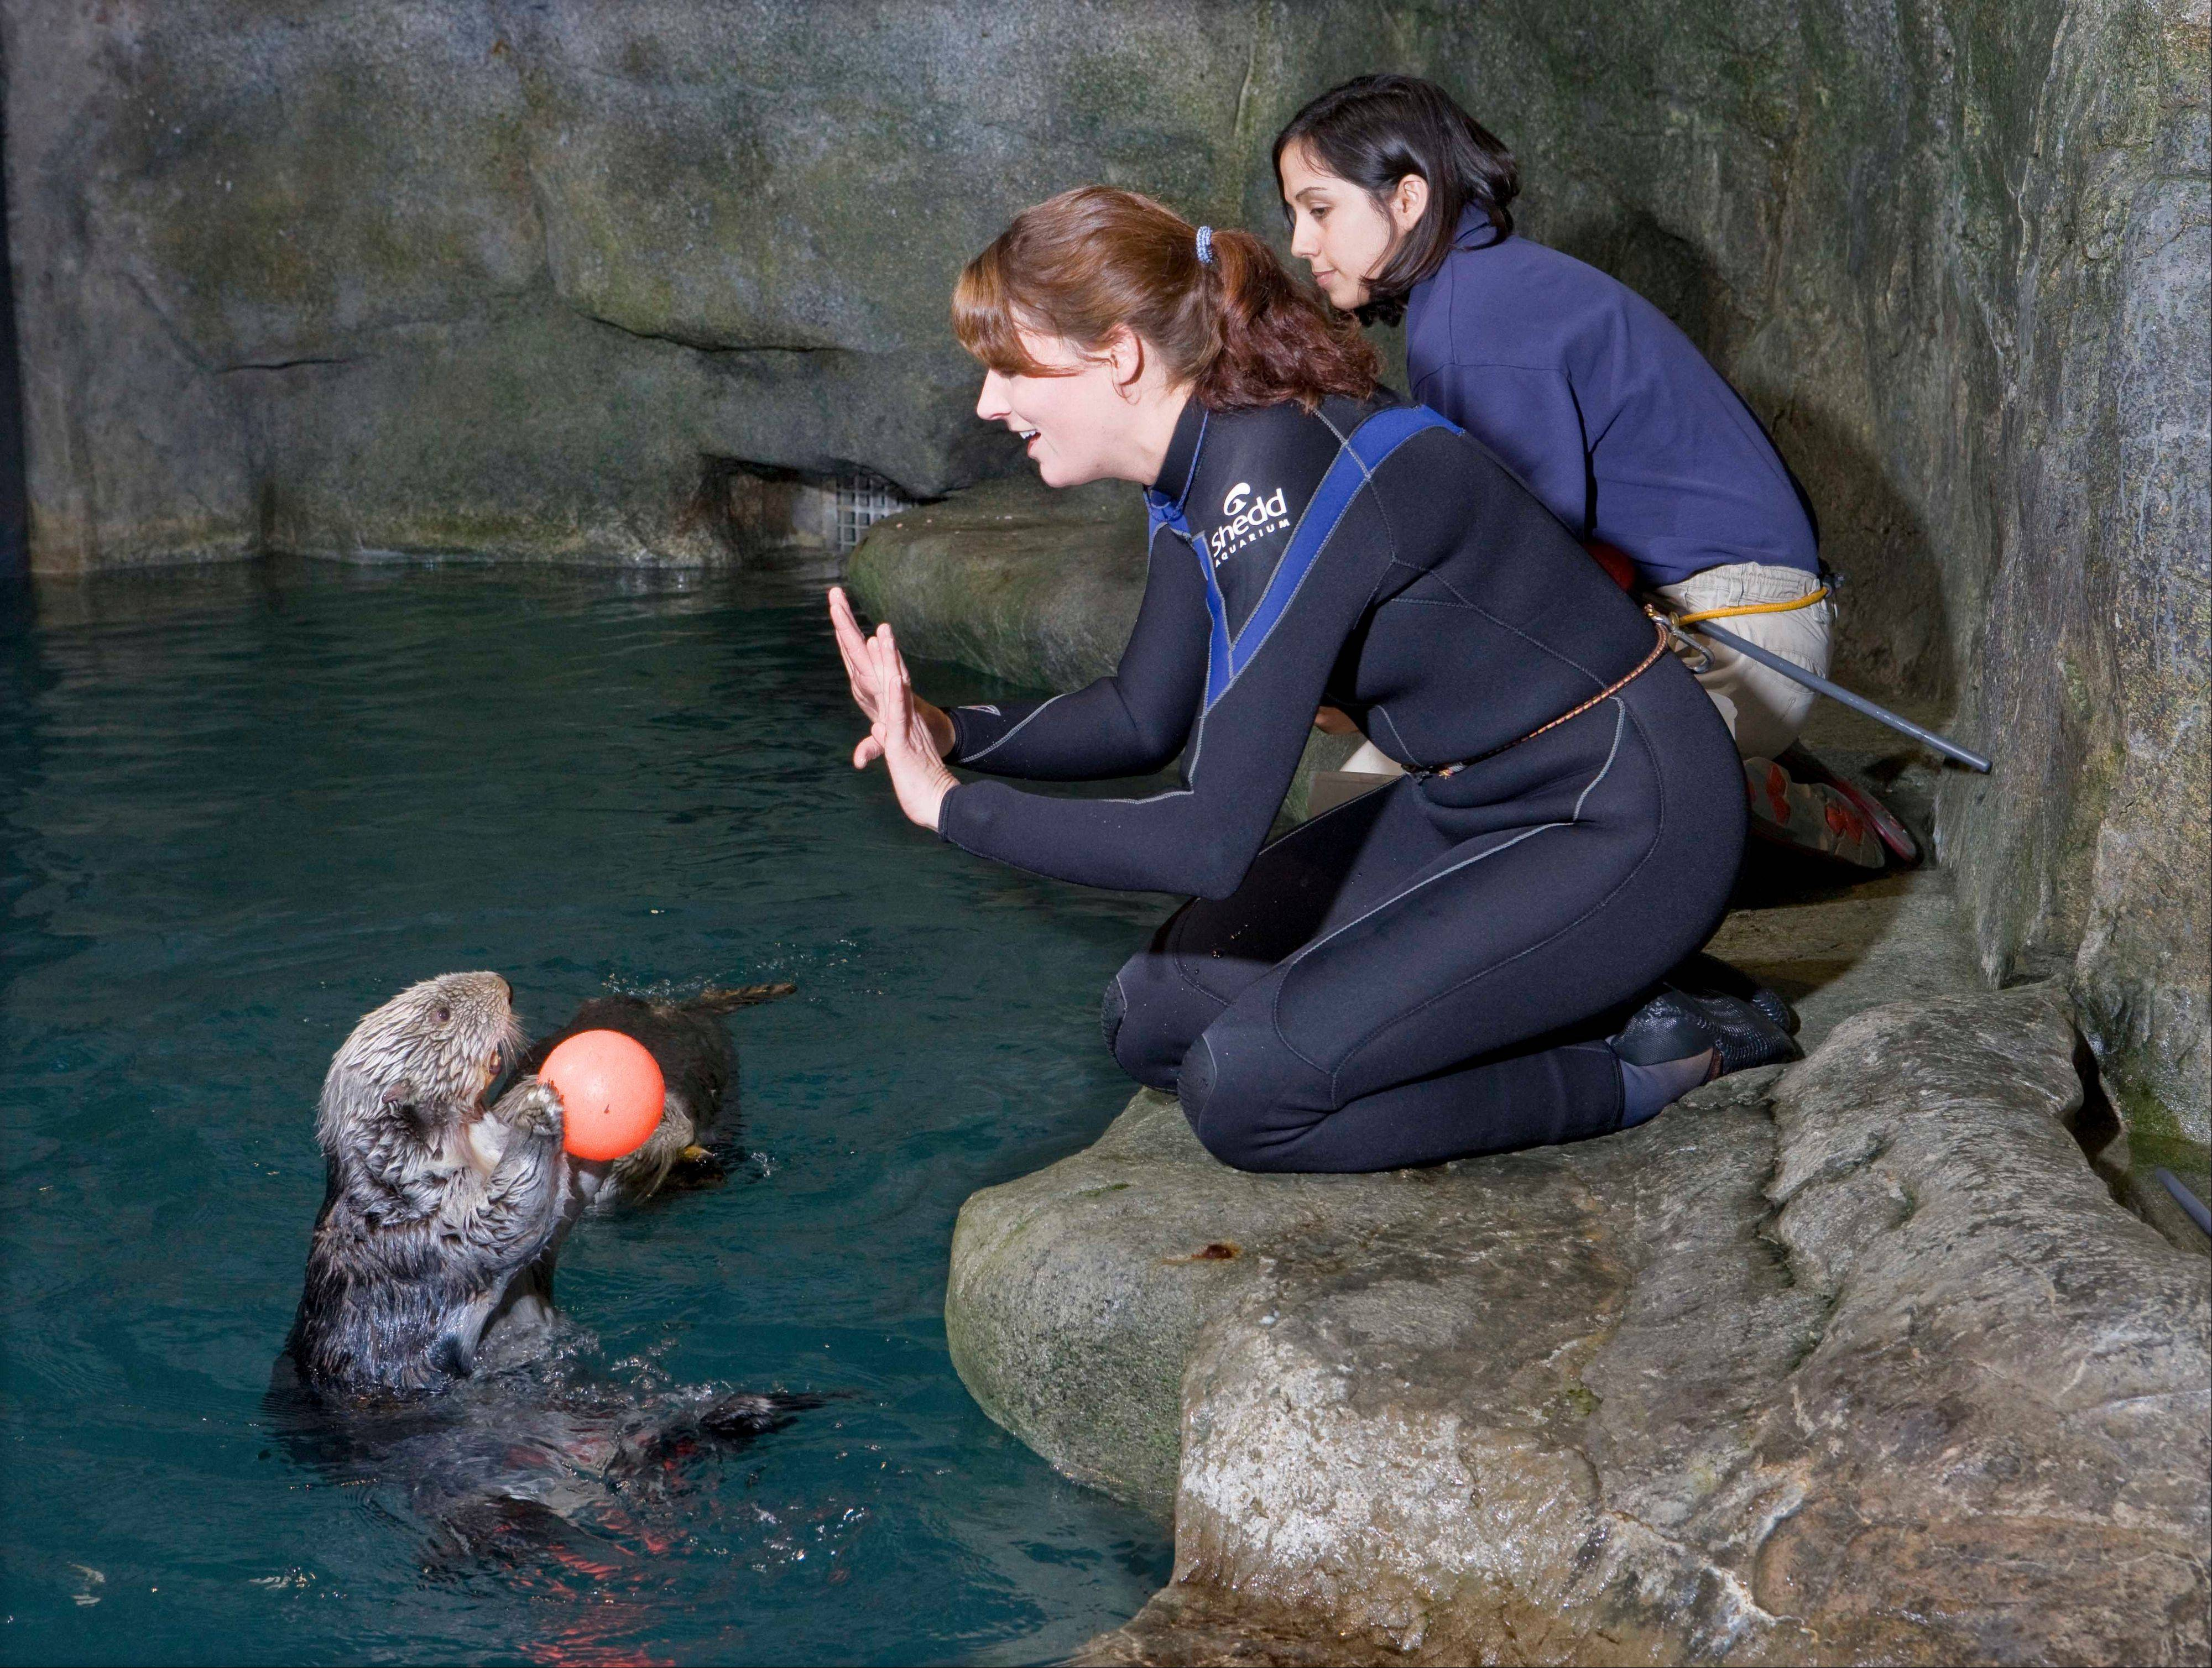 Kachemak interacts with trainers in 2009 at Shedd Aquarium in Chicago. The 23-year-old sea otter was euthanized over the weekend.